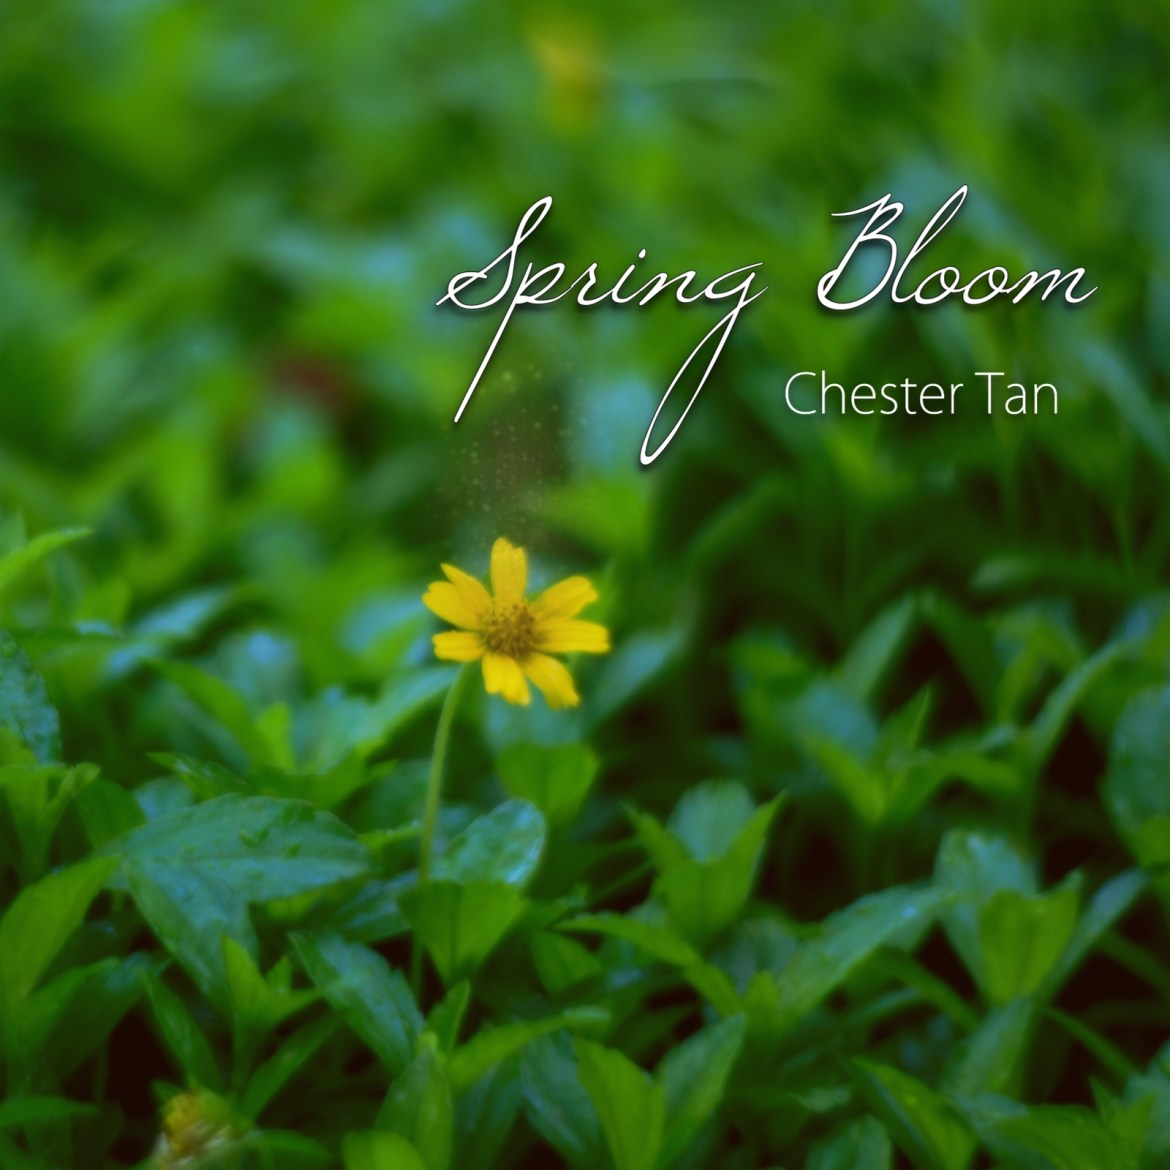 Spring Bloom album by Chester Tan